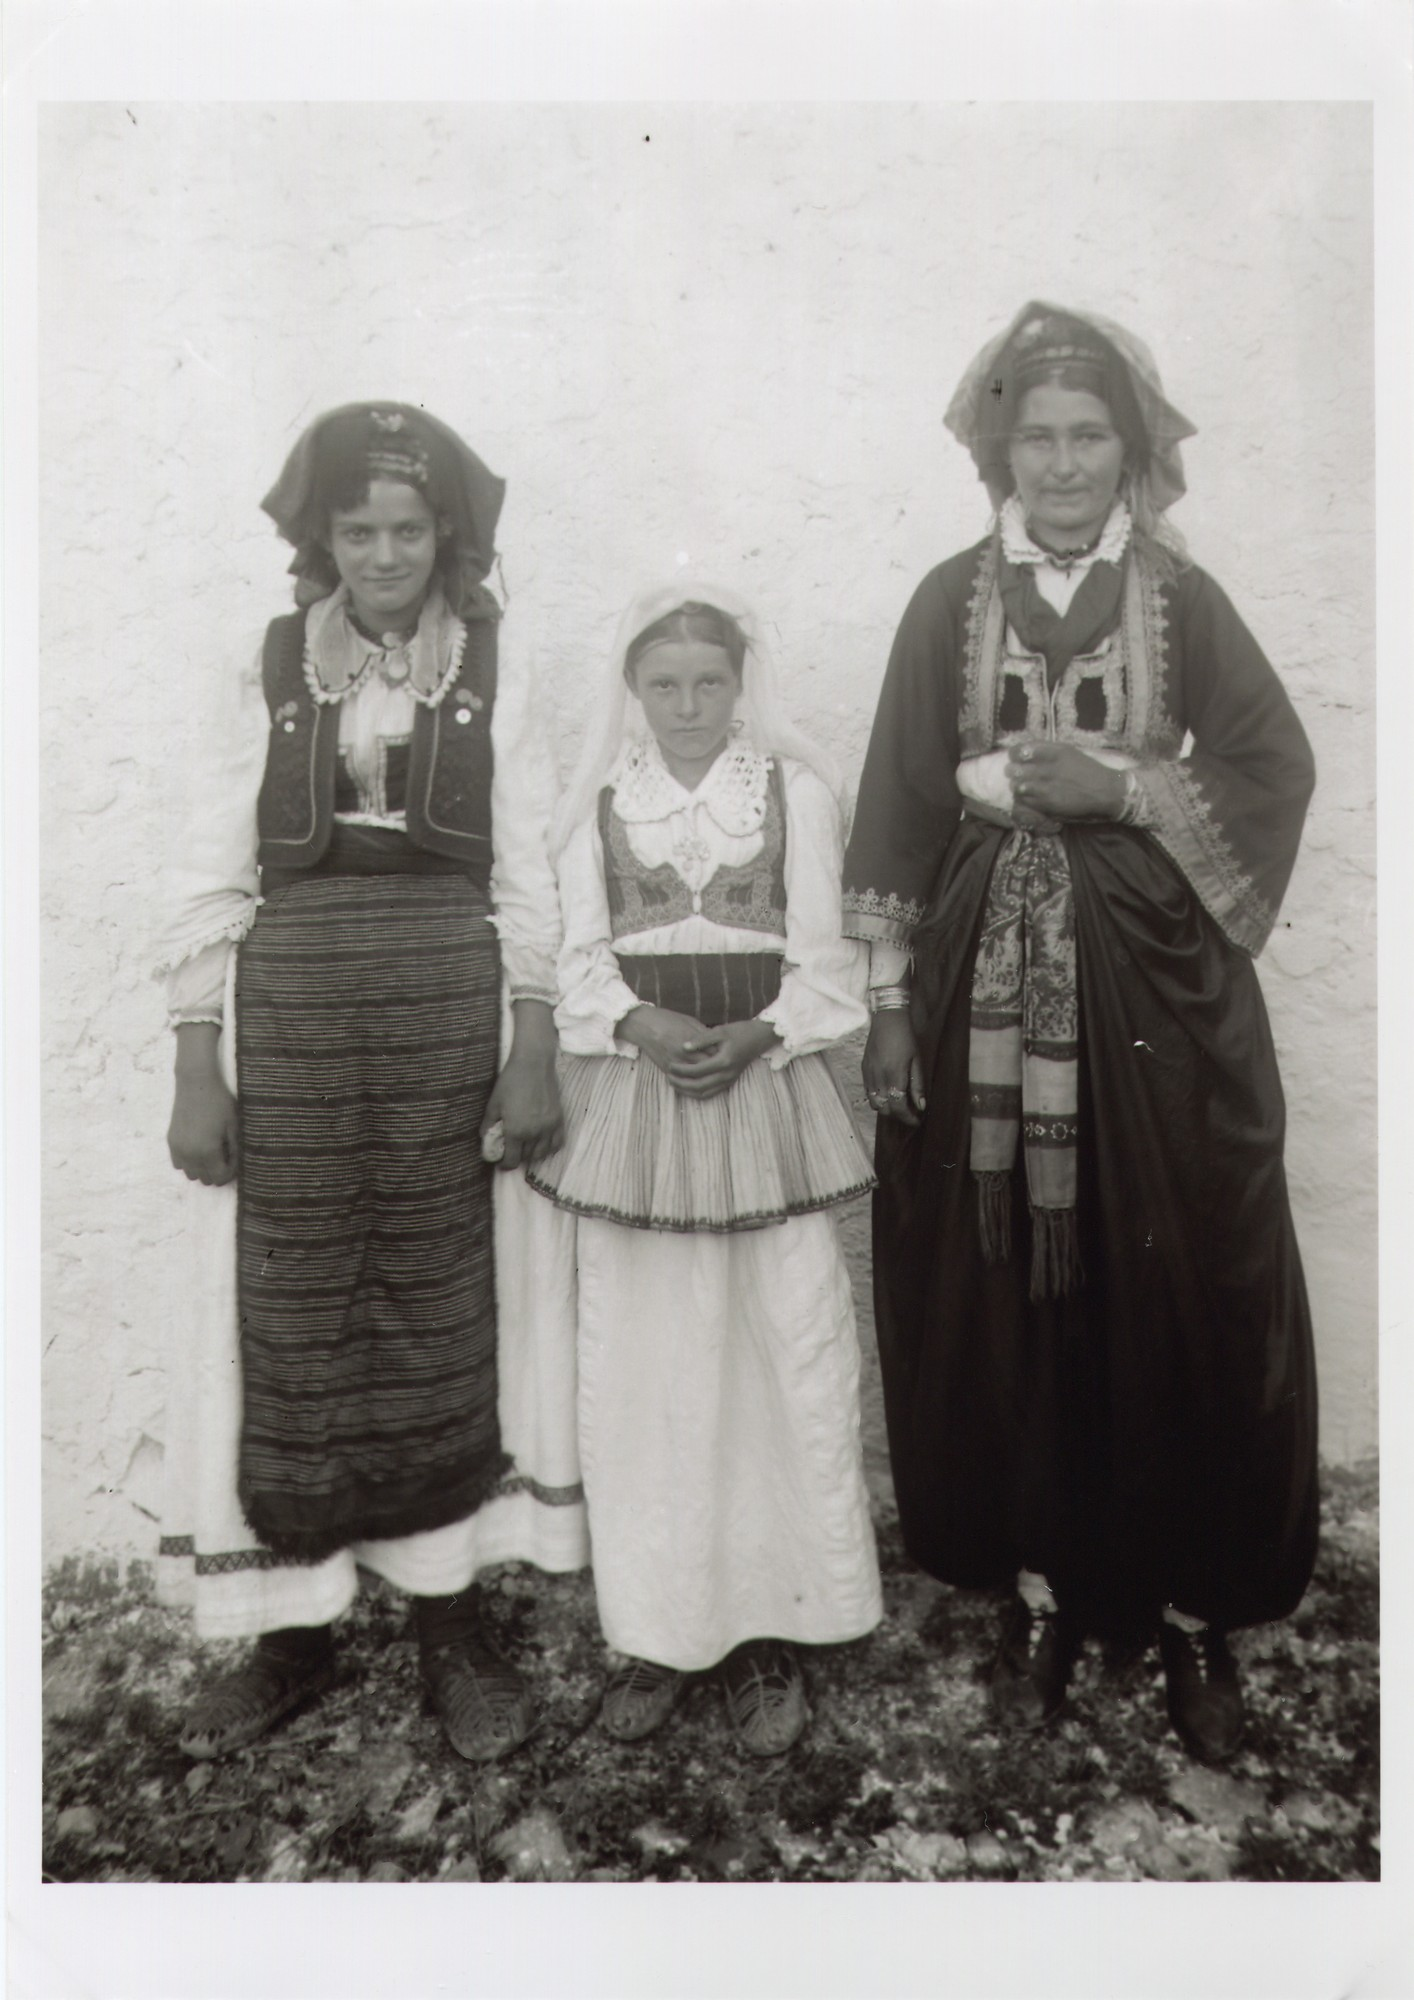 Portrait of three women wearing different folk costumes, © The National Museum of Bosnia and Herzegovina